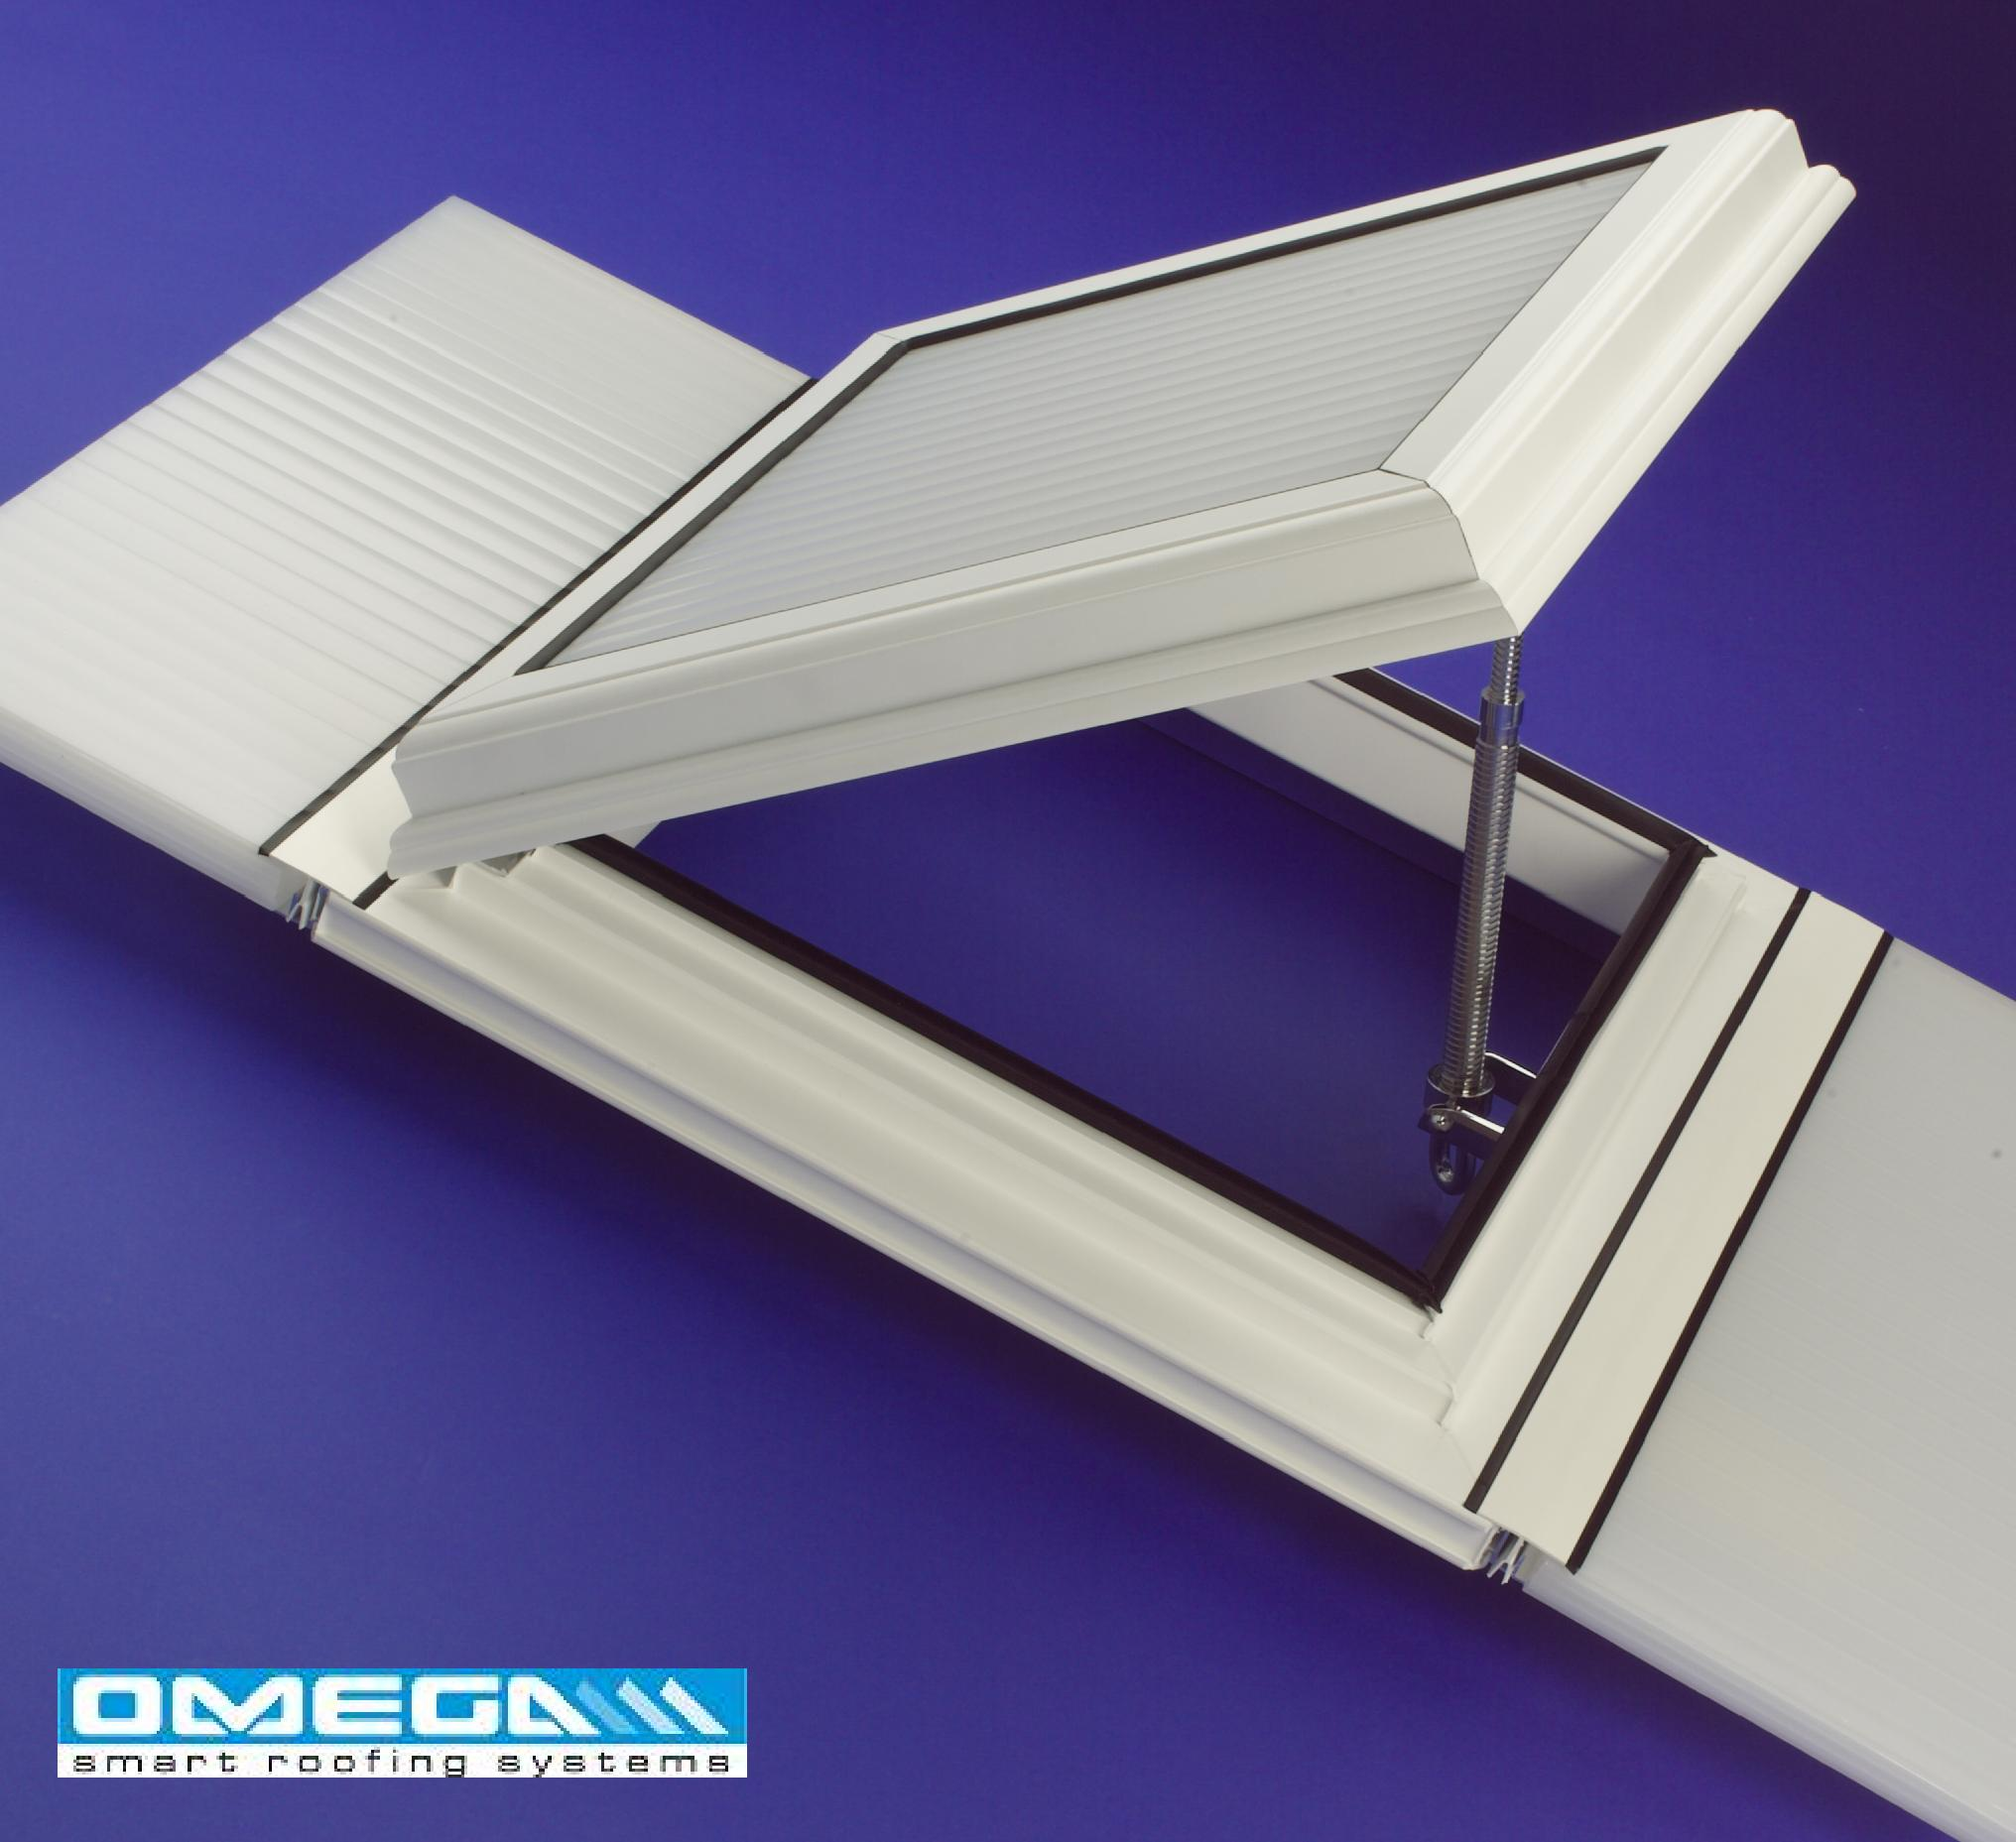 Aluminium/uPVC Conservatory Roof Vent (Bar-to-Bar) for 24mm thick glass